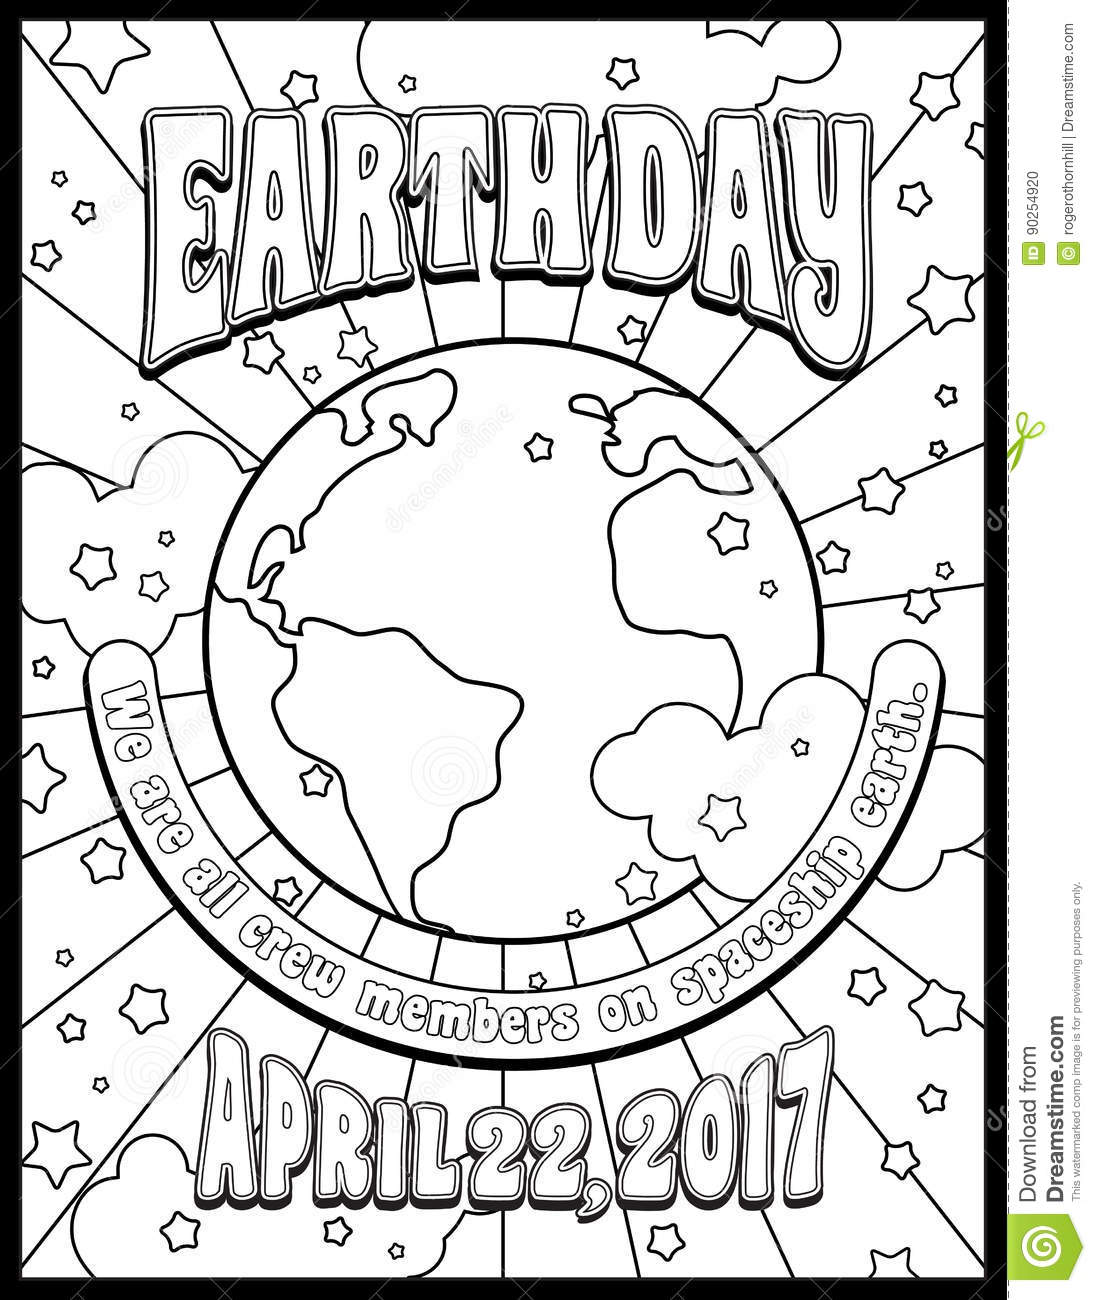 earth day coloring page stock vector image 90254920